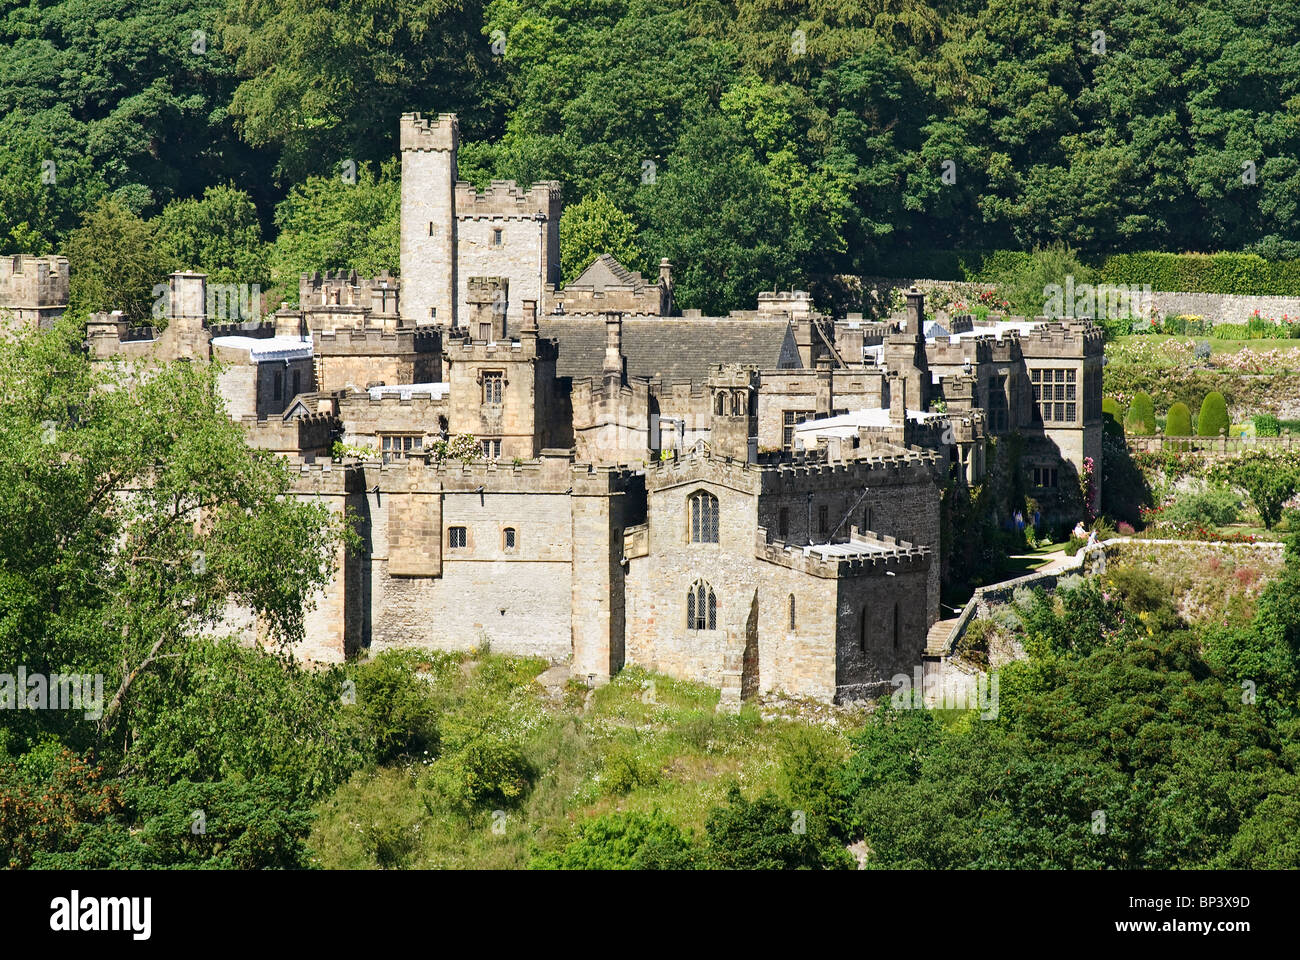 Haddon Hall near Bakewell, Middle England - Stock Image